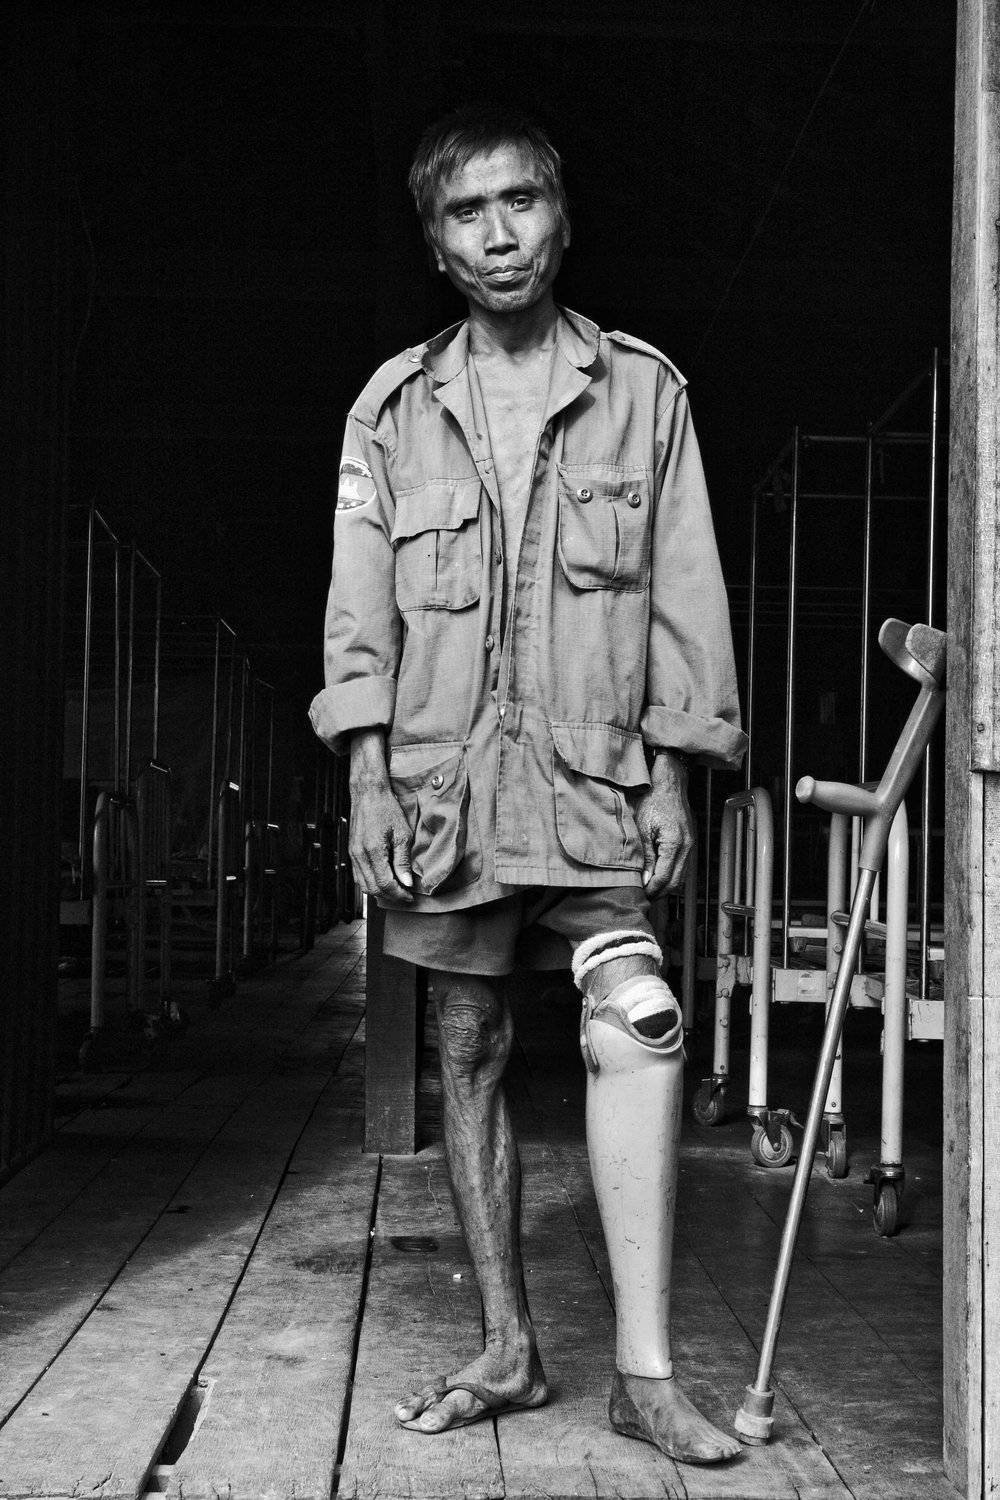 rds.cambodia.siemreap.063 copy1.jpeg